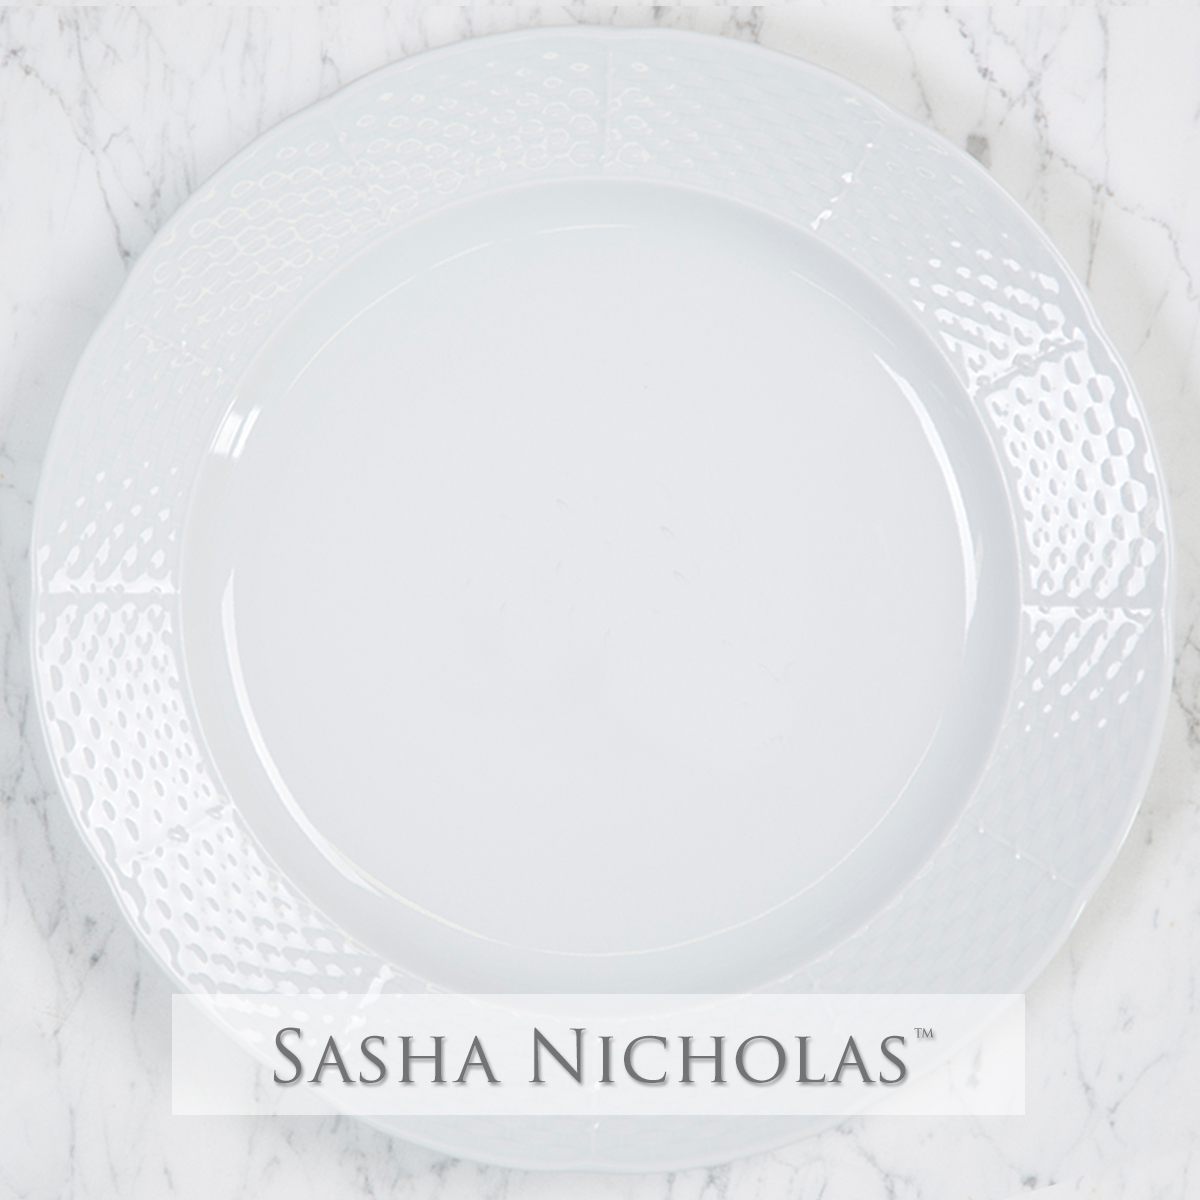 A beautiful addition to your dinnerware collection and to adorn your tablescapes with. It makes the perfect gift for your wedding registry with the included inscription on back. Choose from their signature font styles or use a custom monogram or crest of your choice! | Sasha Nicholas porcelain weave charger